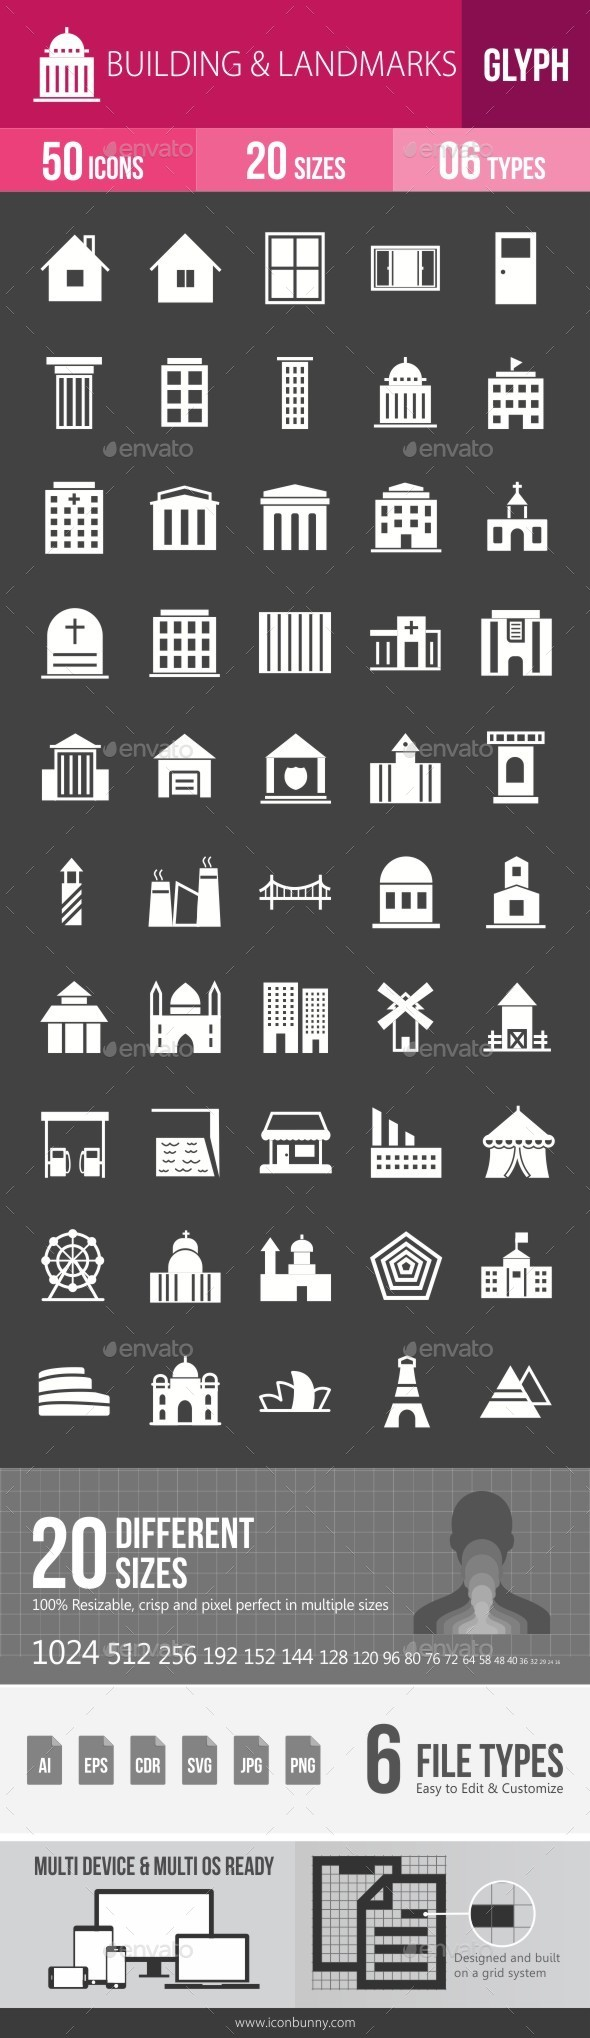 Buildings & Landmarks Glyph Inverted Icons - Icons